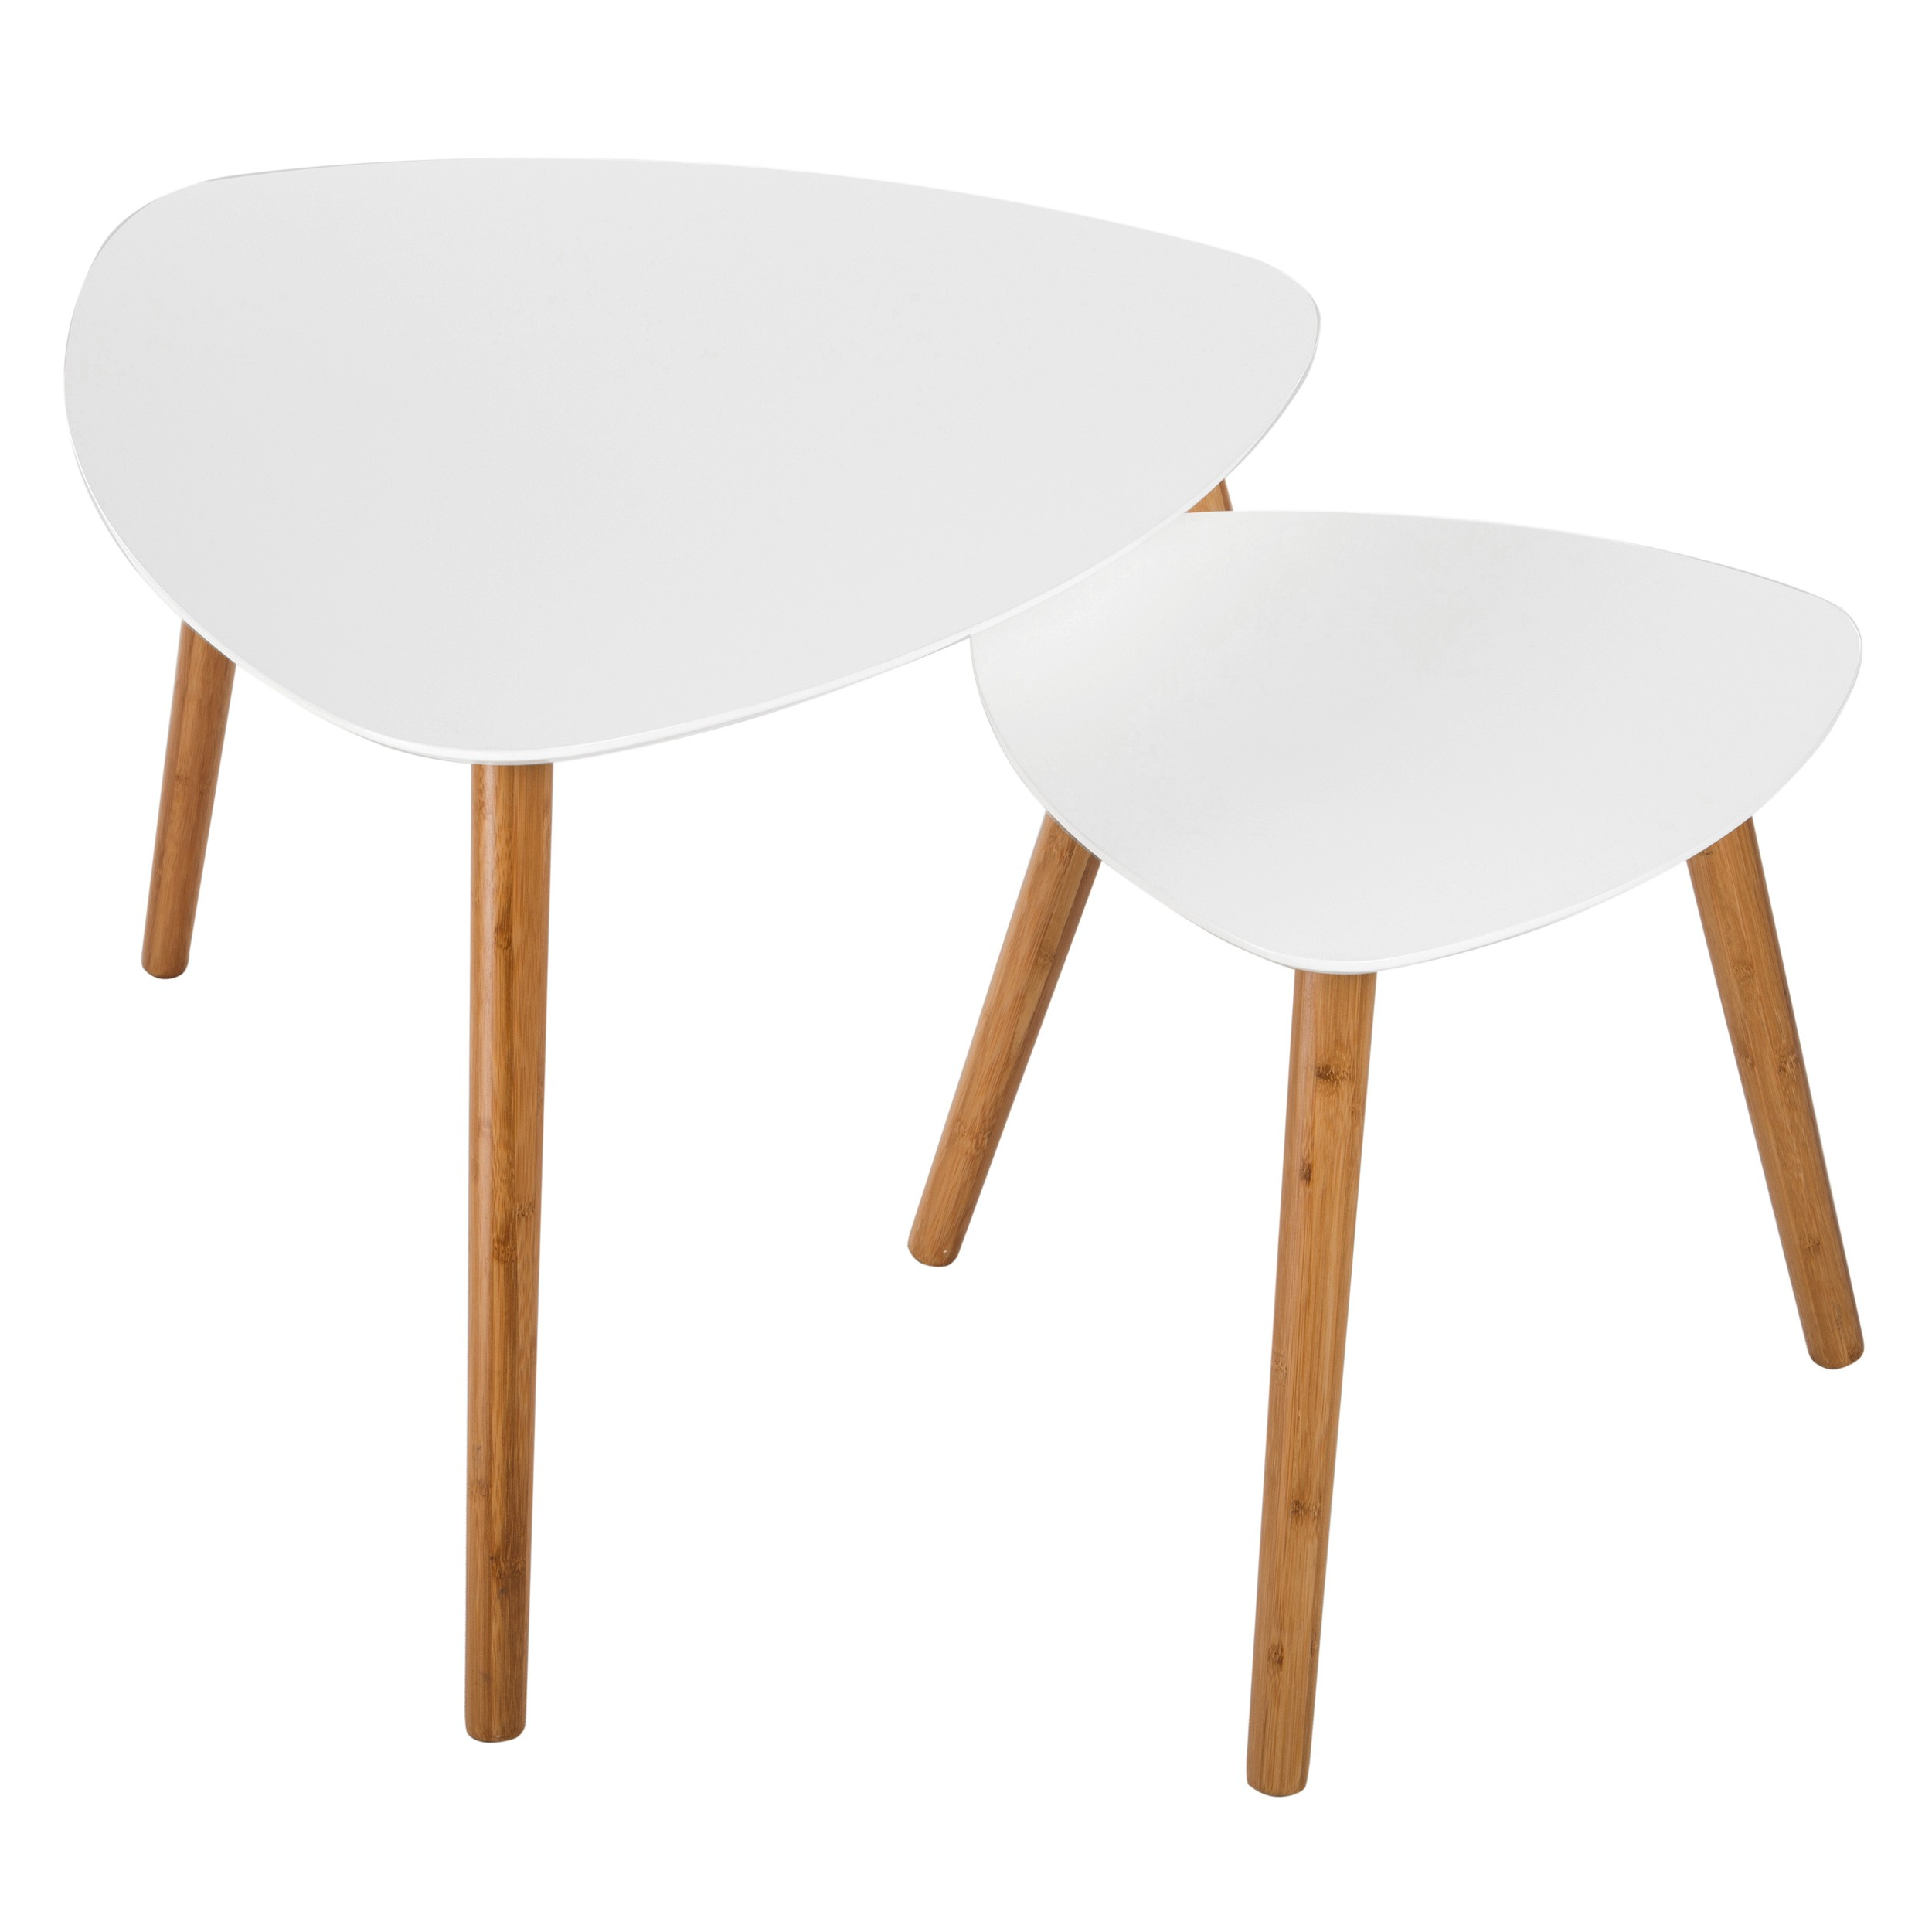 Table Basse Blanche Scandinave Table Basse Scandinave Blanche Lot De 2 Achetez Nos